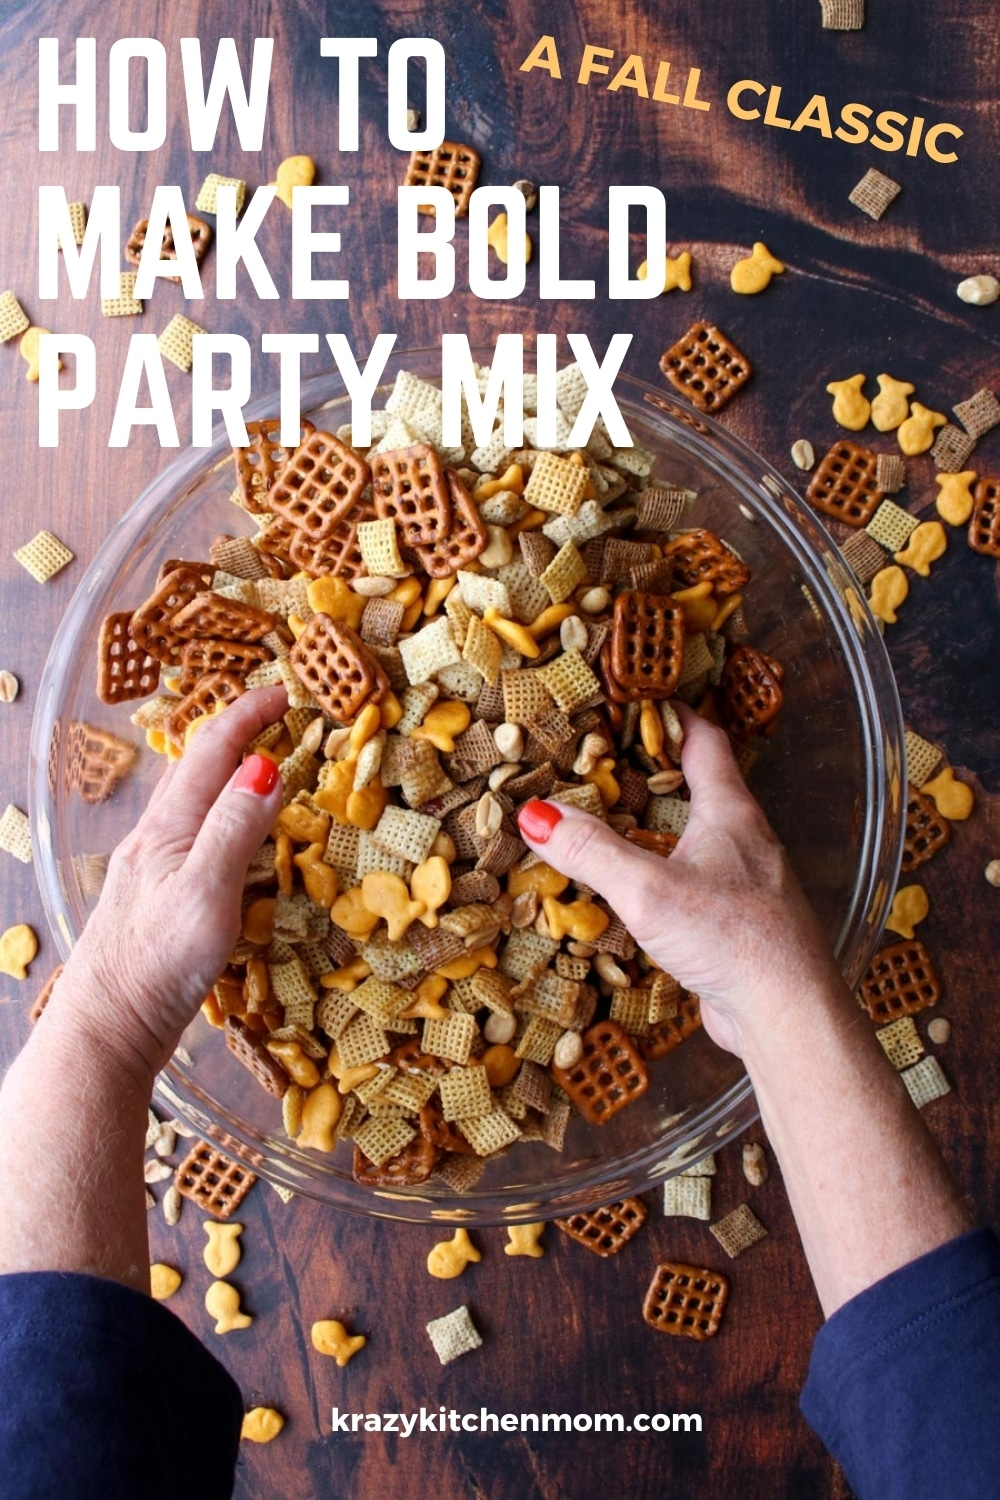 Bold, zesty, buttery, crunchy, salty party mix is a fan favorite at our house. It's my bolder zestier version of a classic party mix snack that really gets the party started.  via @krazykitchenmom